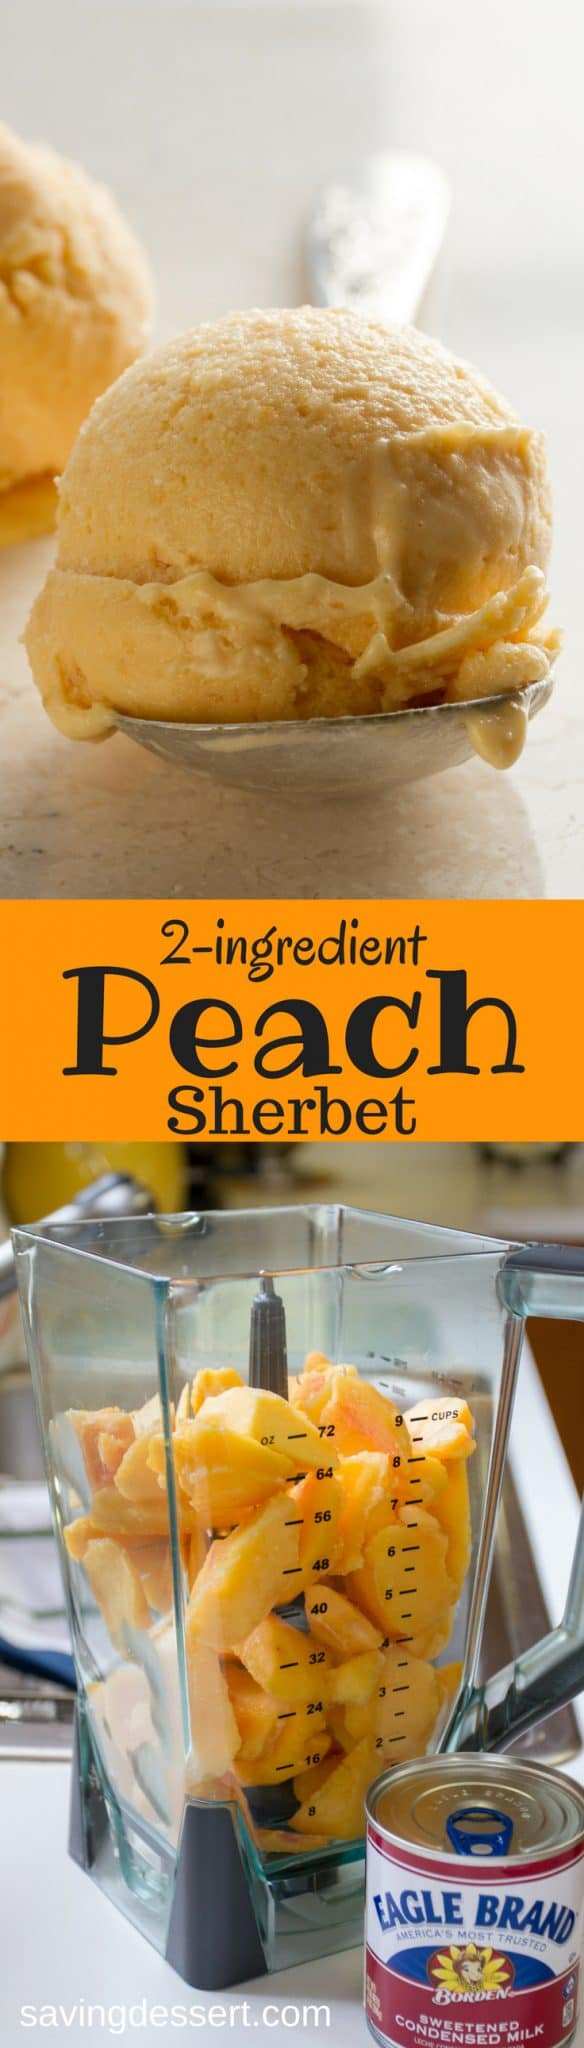 Peach Sherbet - a creamy, delicious, velvety smooth fresh peach dessert - made with only two ingredients right in your blender! #peach #sherbet #sorbet #icecream #peachicecream #peachsherbet #frozentreat